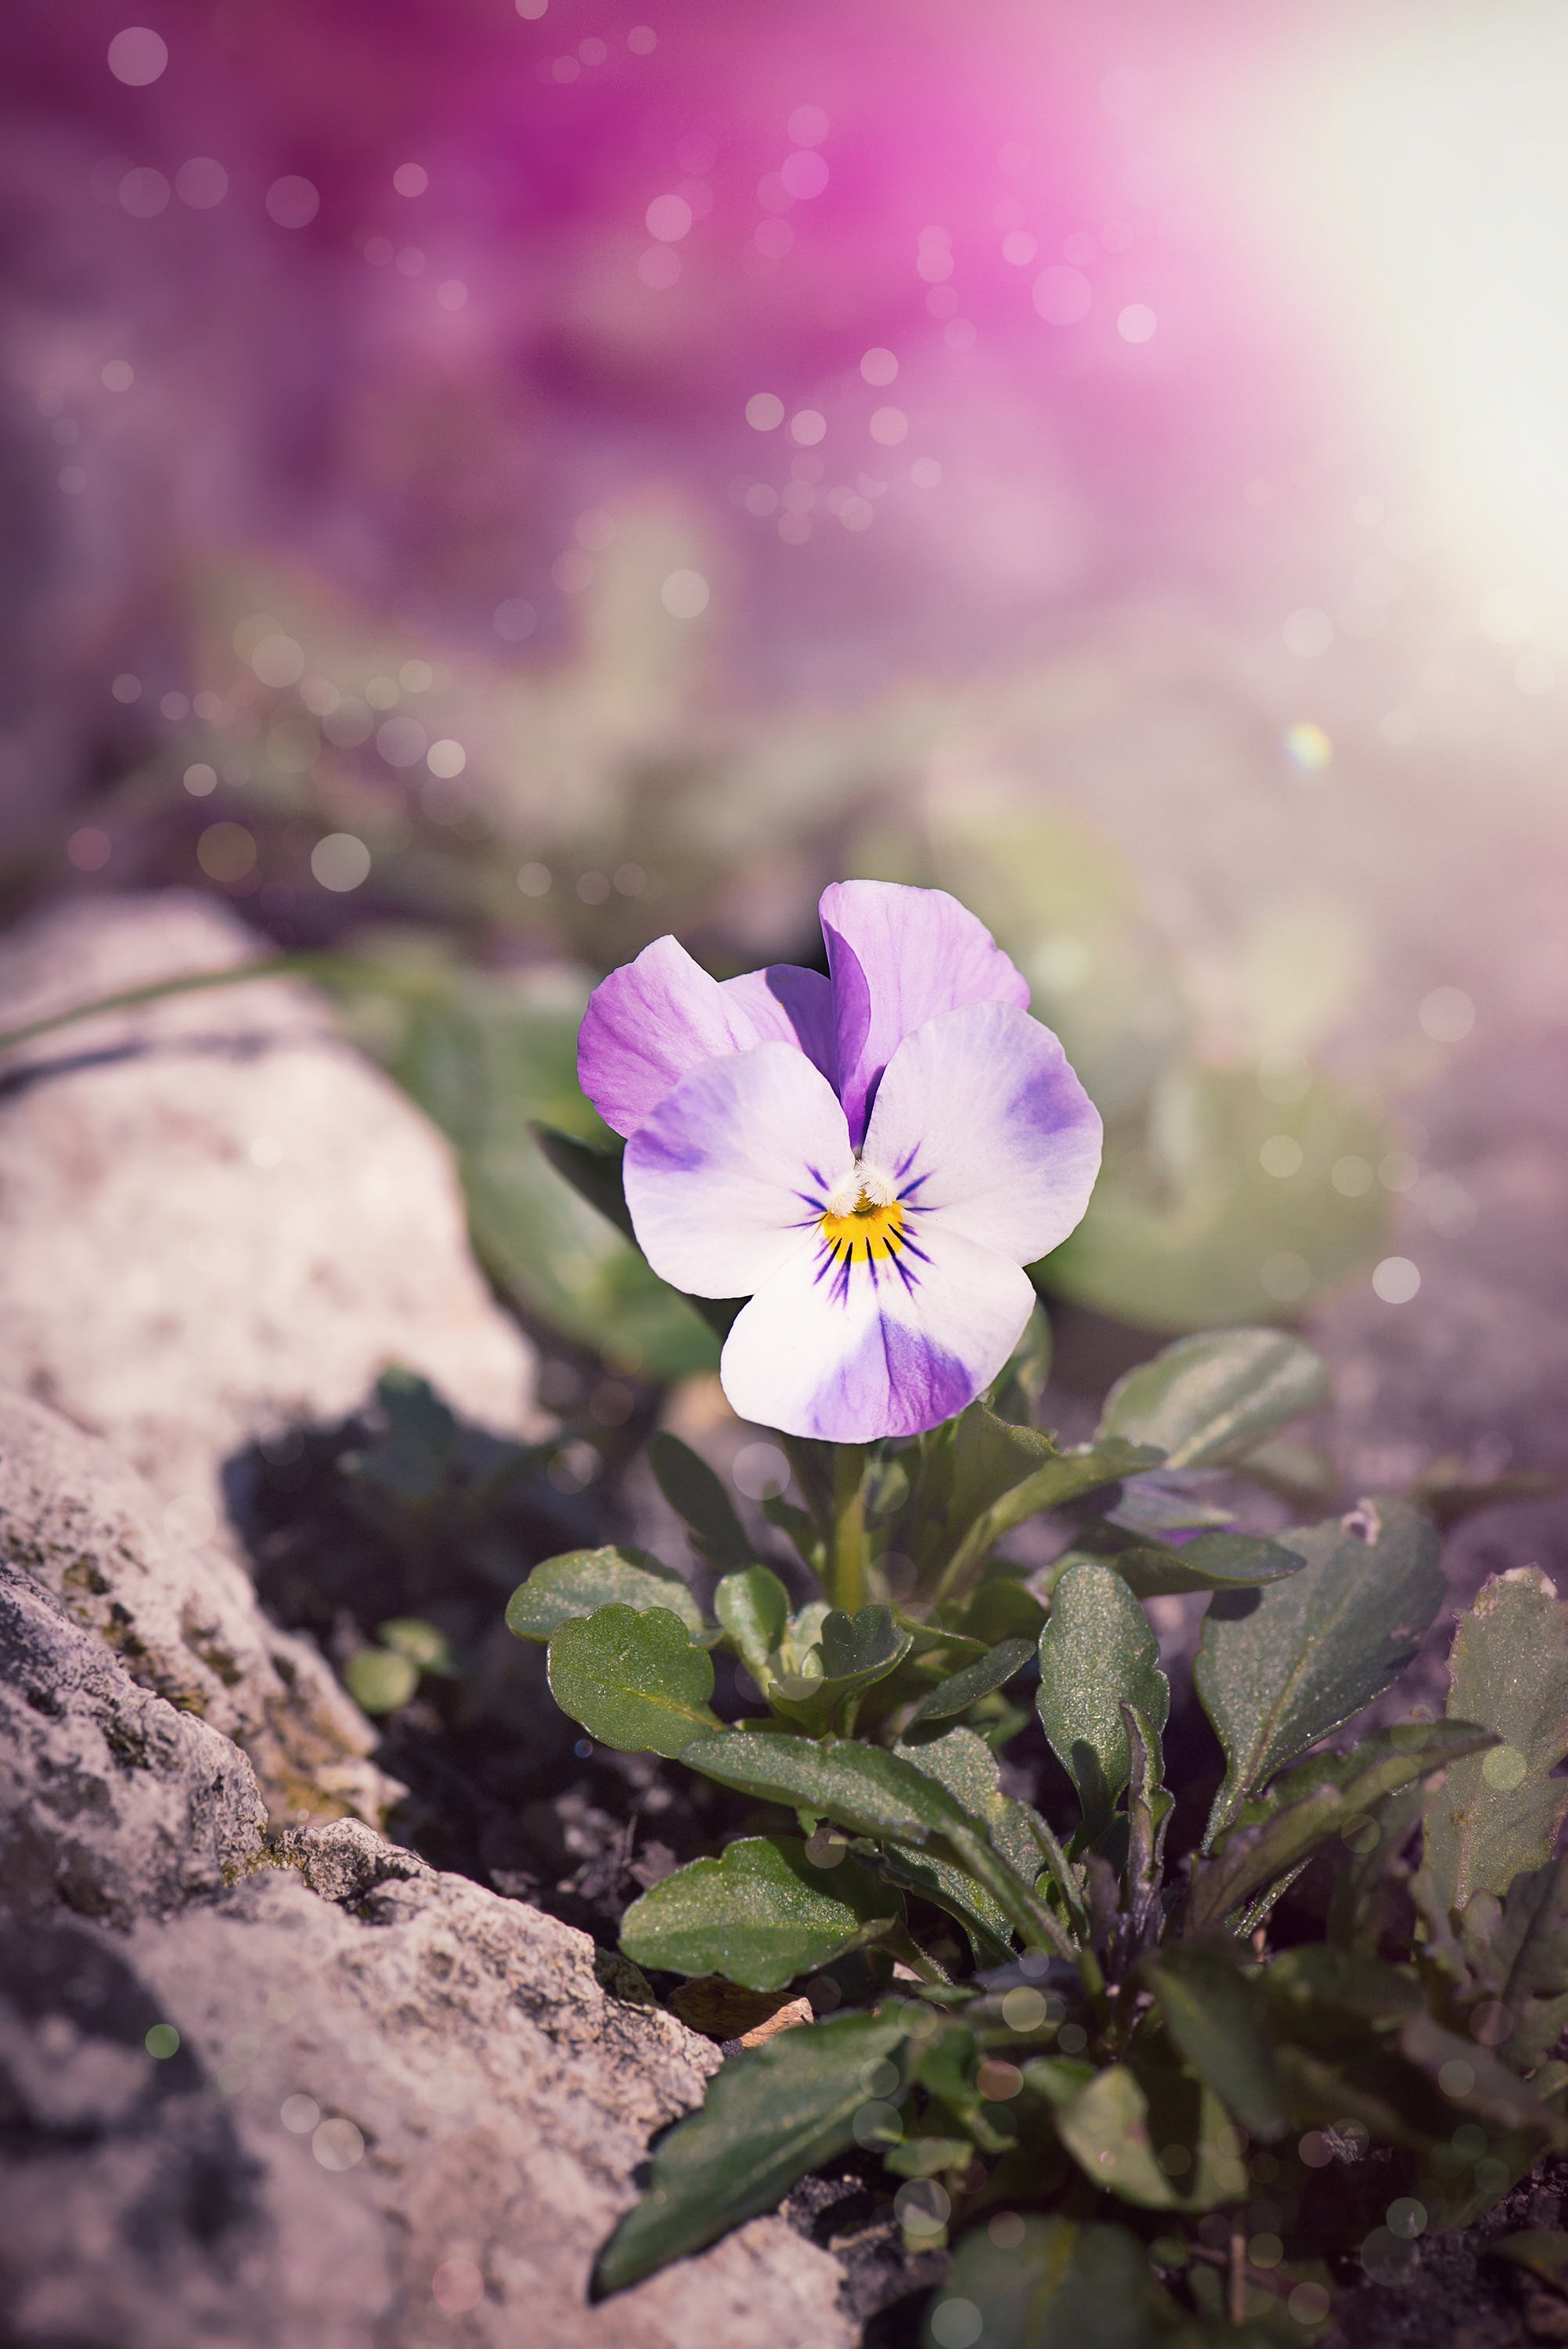 Purple and White Pansy Flower